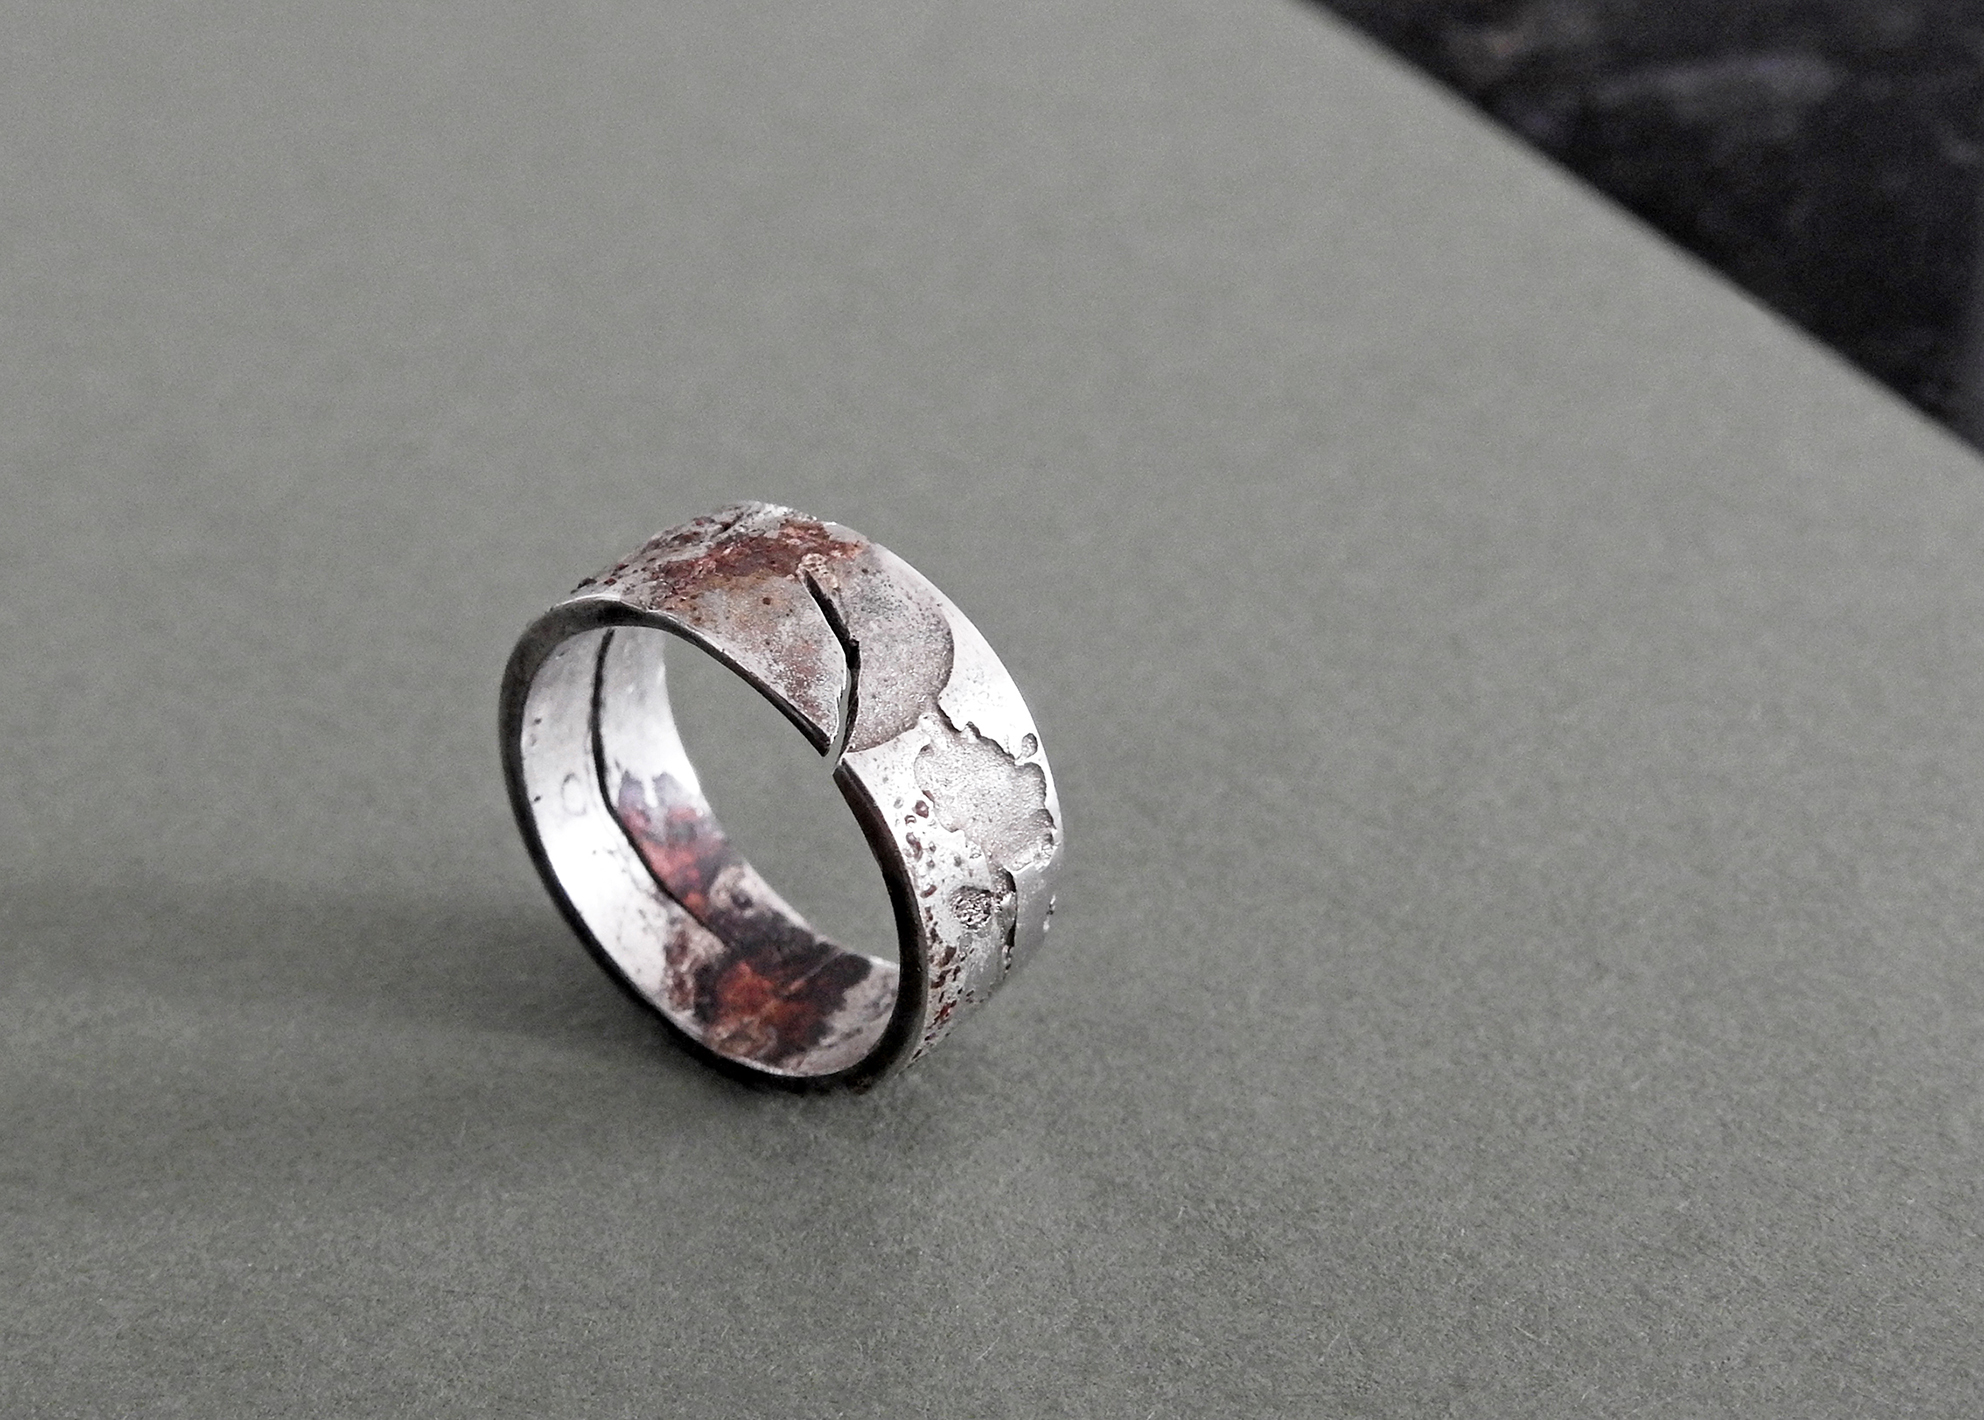 Ring (2019): Silver, Melted Aluminium, Enamel